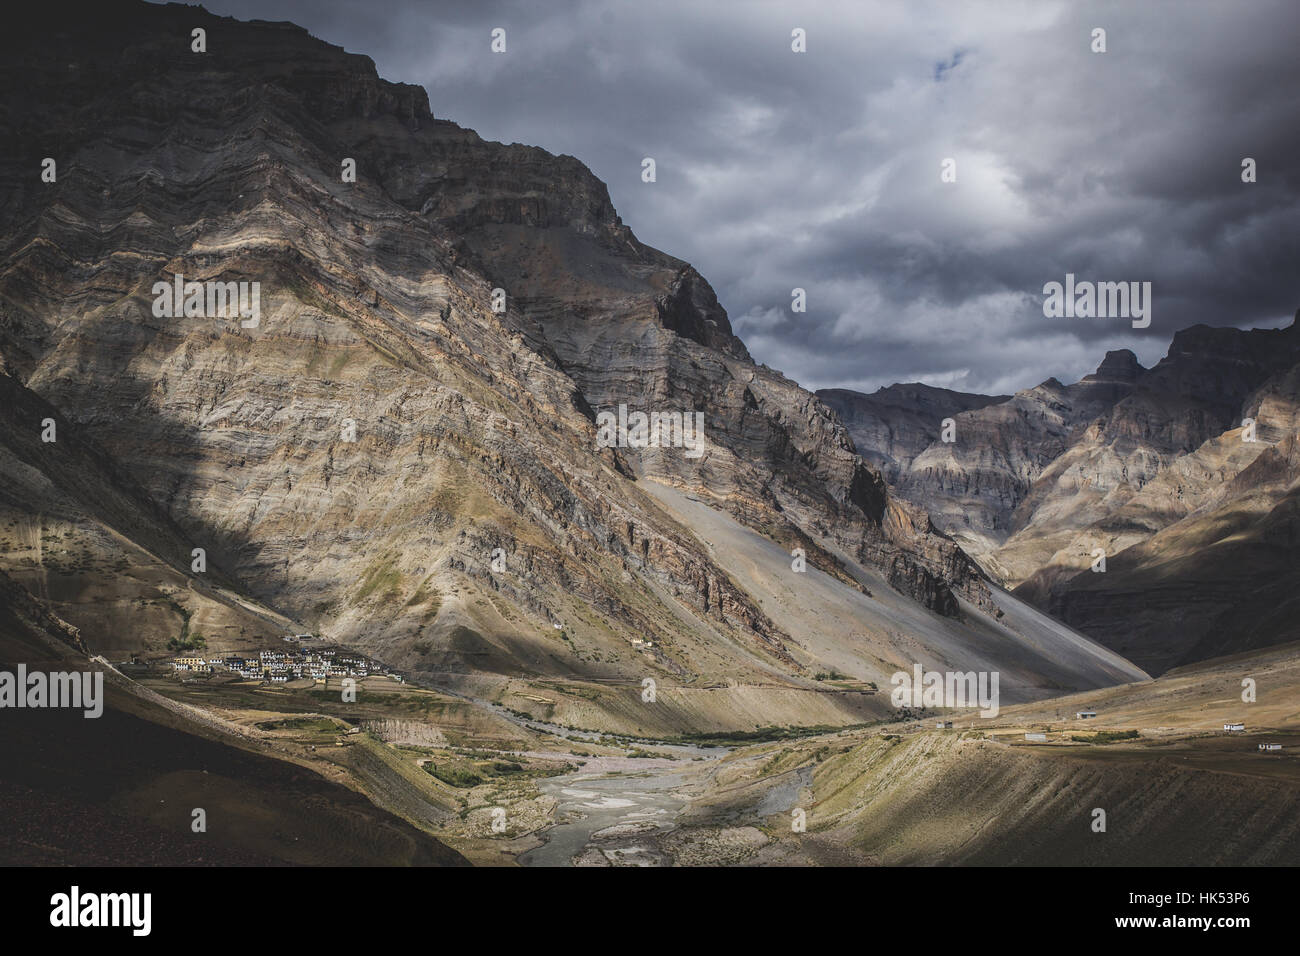 A particularly gloomy day in Spiti Valley, Himachal Pradesh - Stock Image